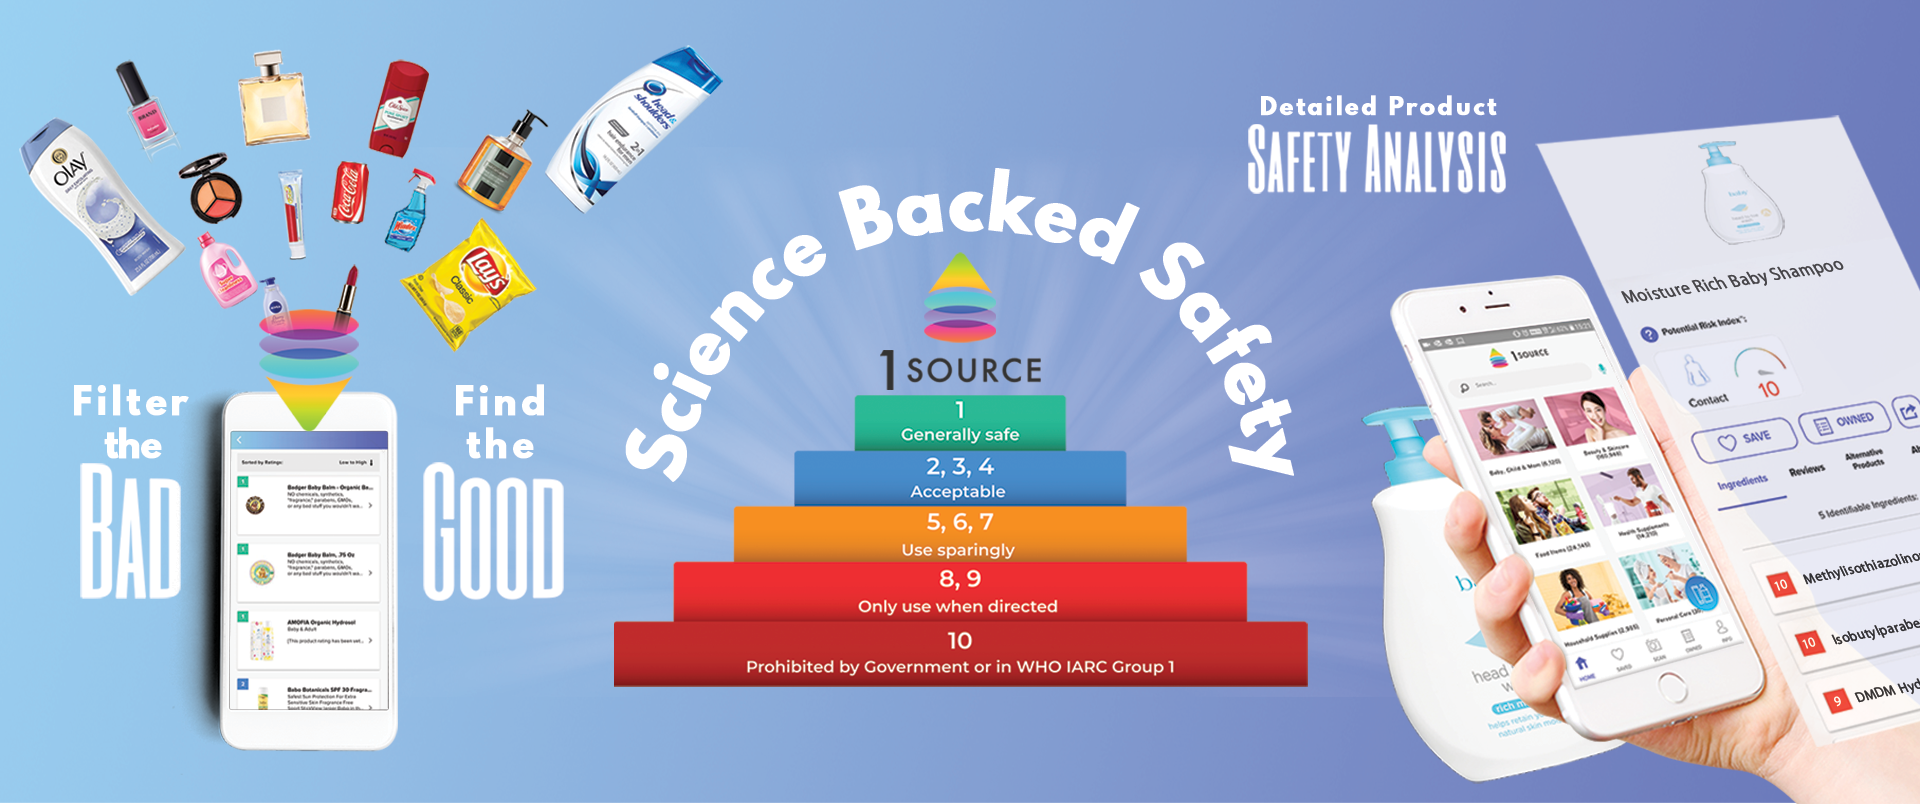 Science Backed 1